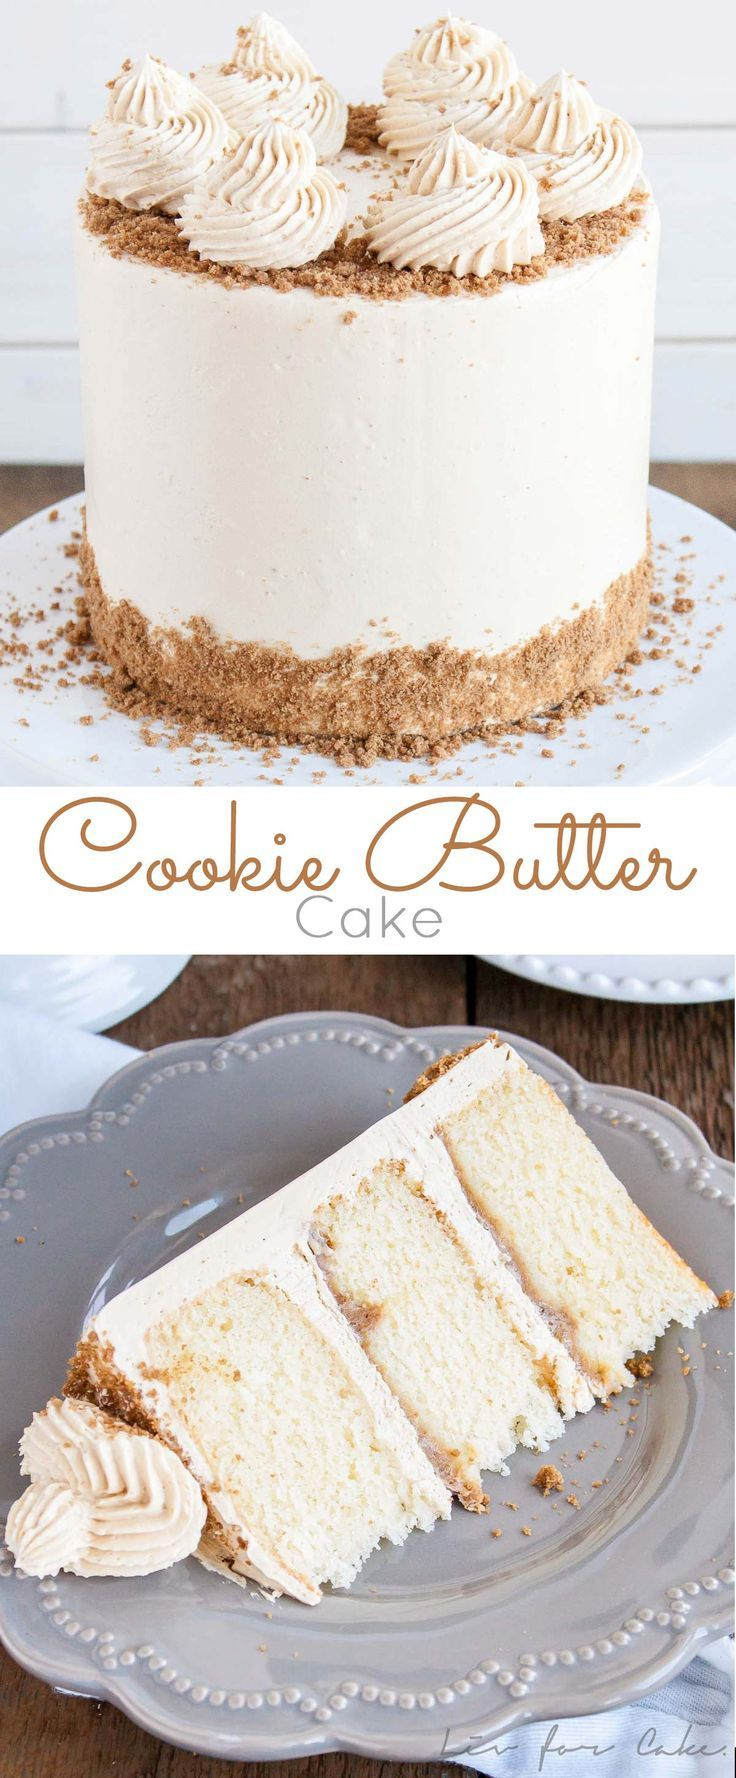 This Cookie Butter Cake pairs fluffy vanilla cake with a sweet cookie butter frosting and crushed speculoos cookies for some added crunch. | http://livforcake.com